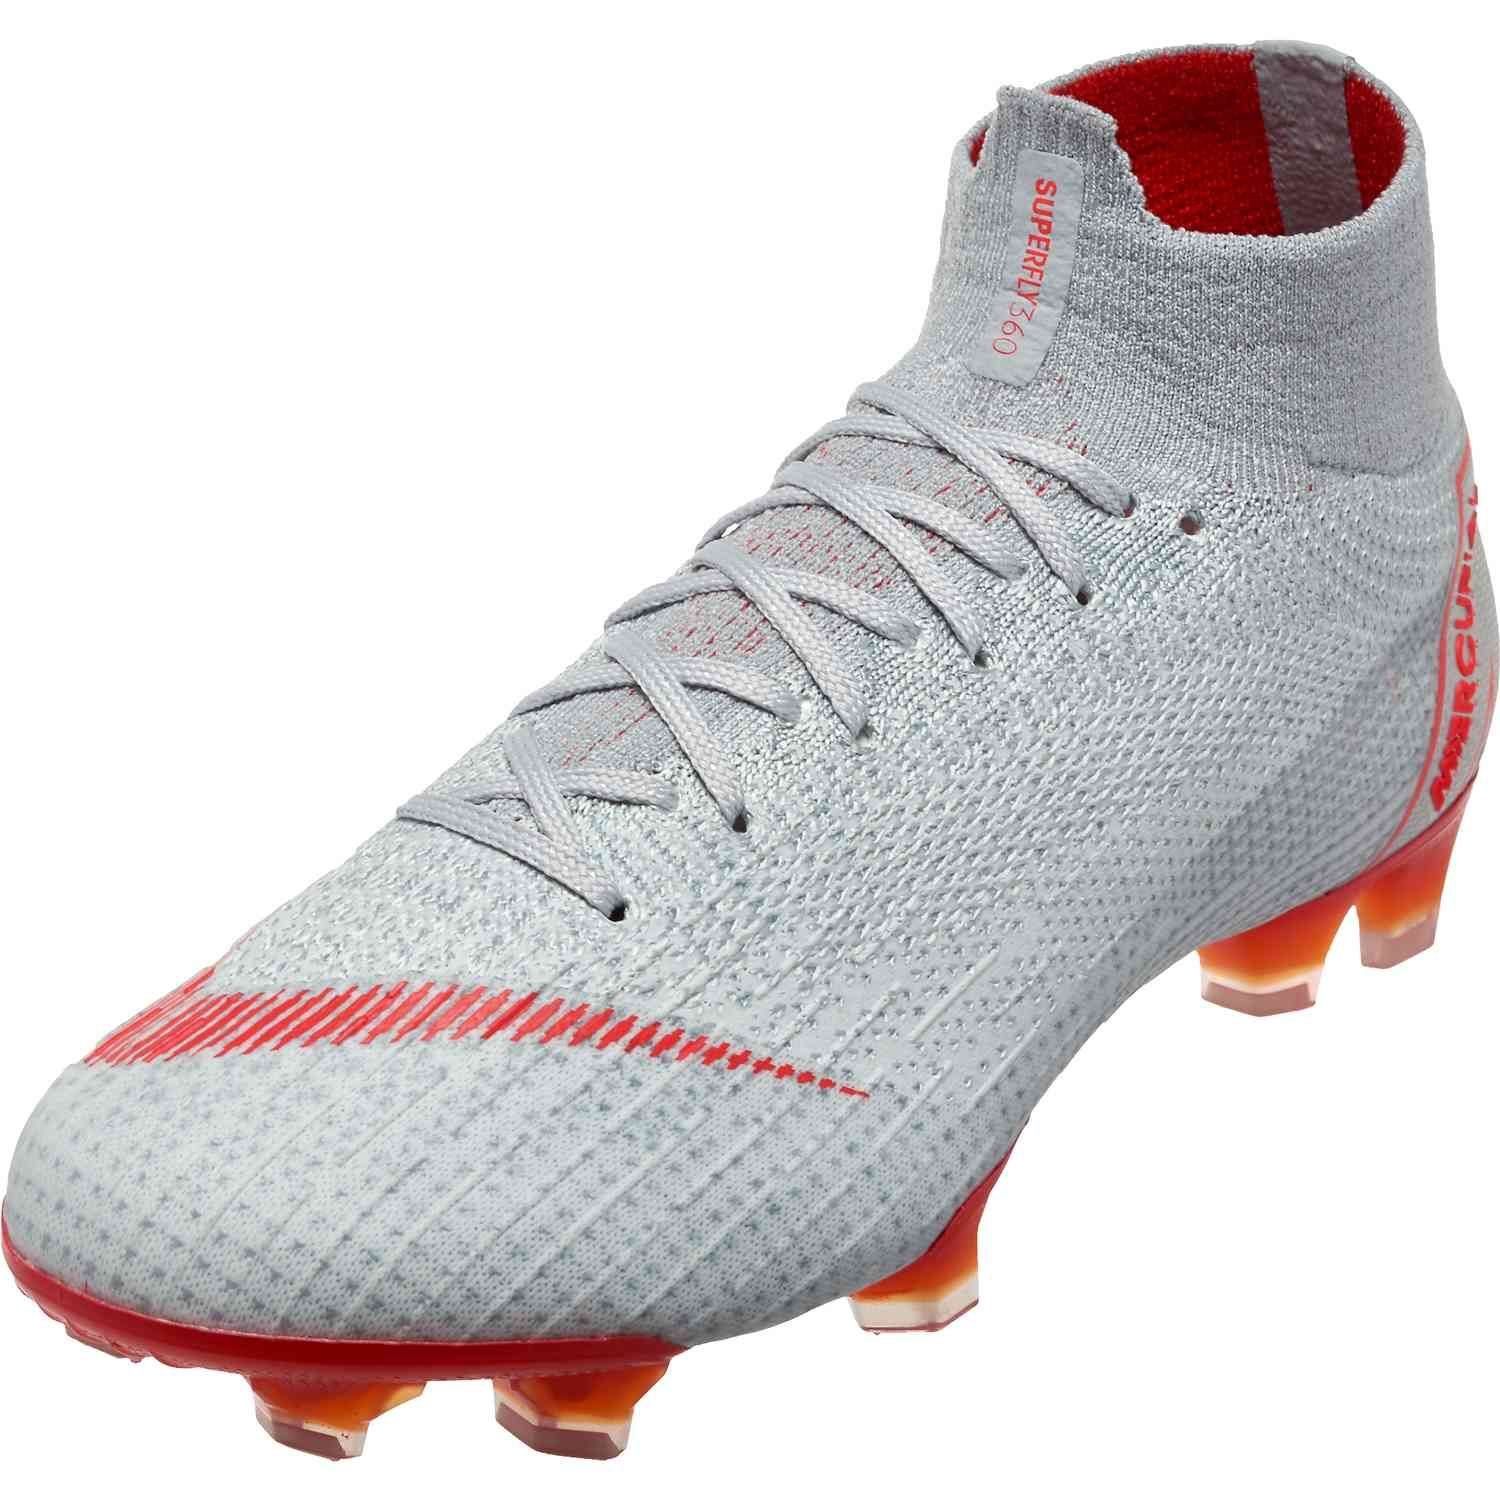 Shop today for the Raised on Concrete pack Nike Superfly 6 Elite shoes! Get  yours from soccerpro.com bdac8d28edf99